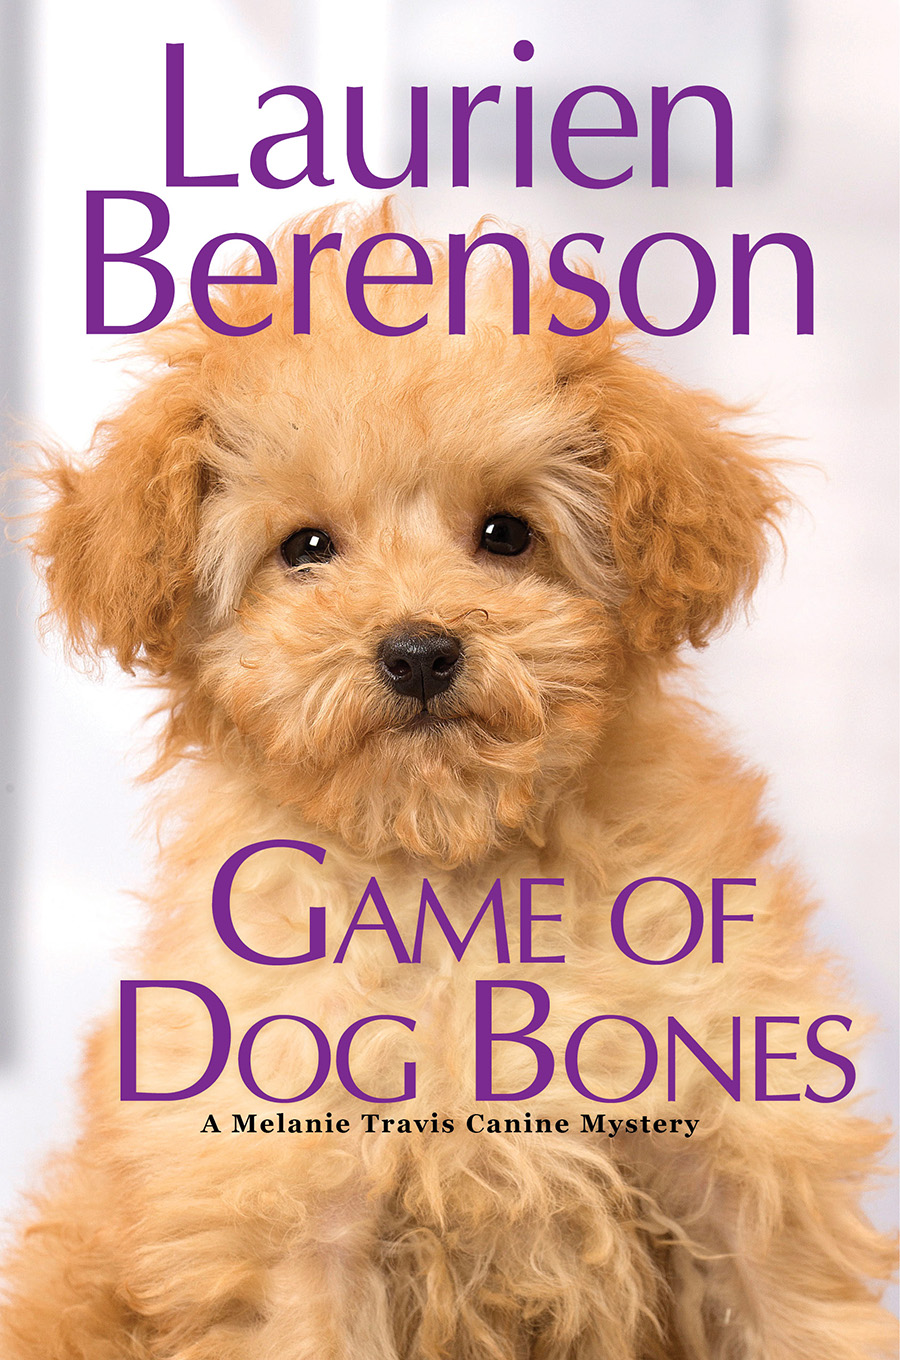 Game of Dog Bones cover by Laurien Berenson